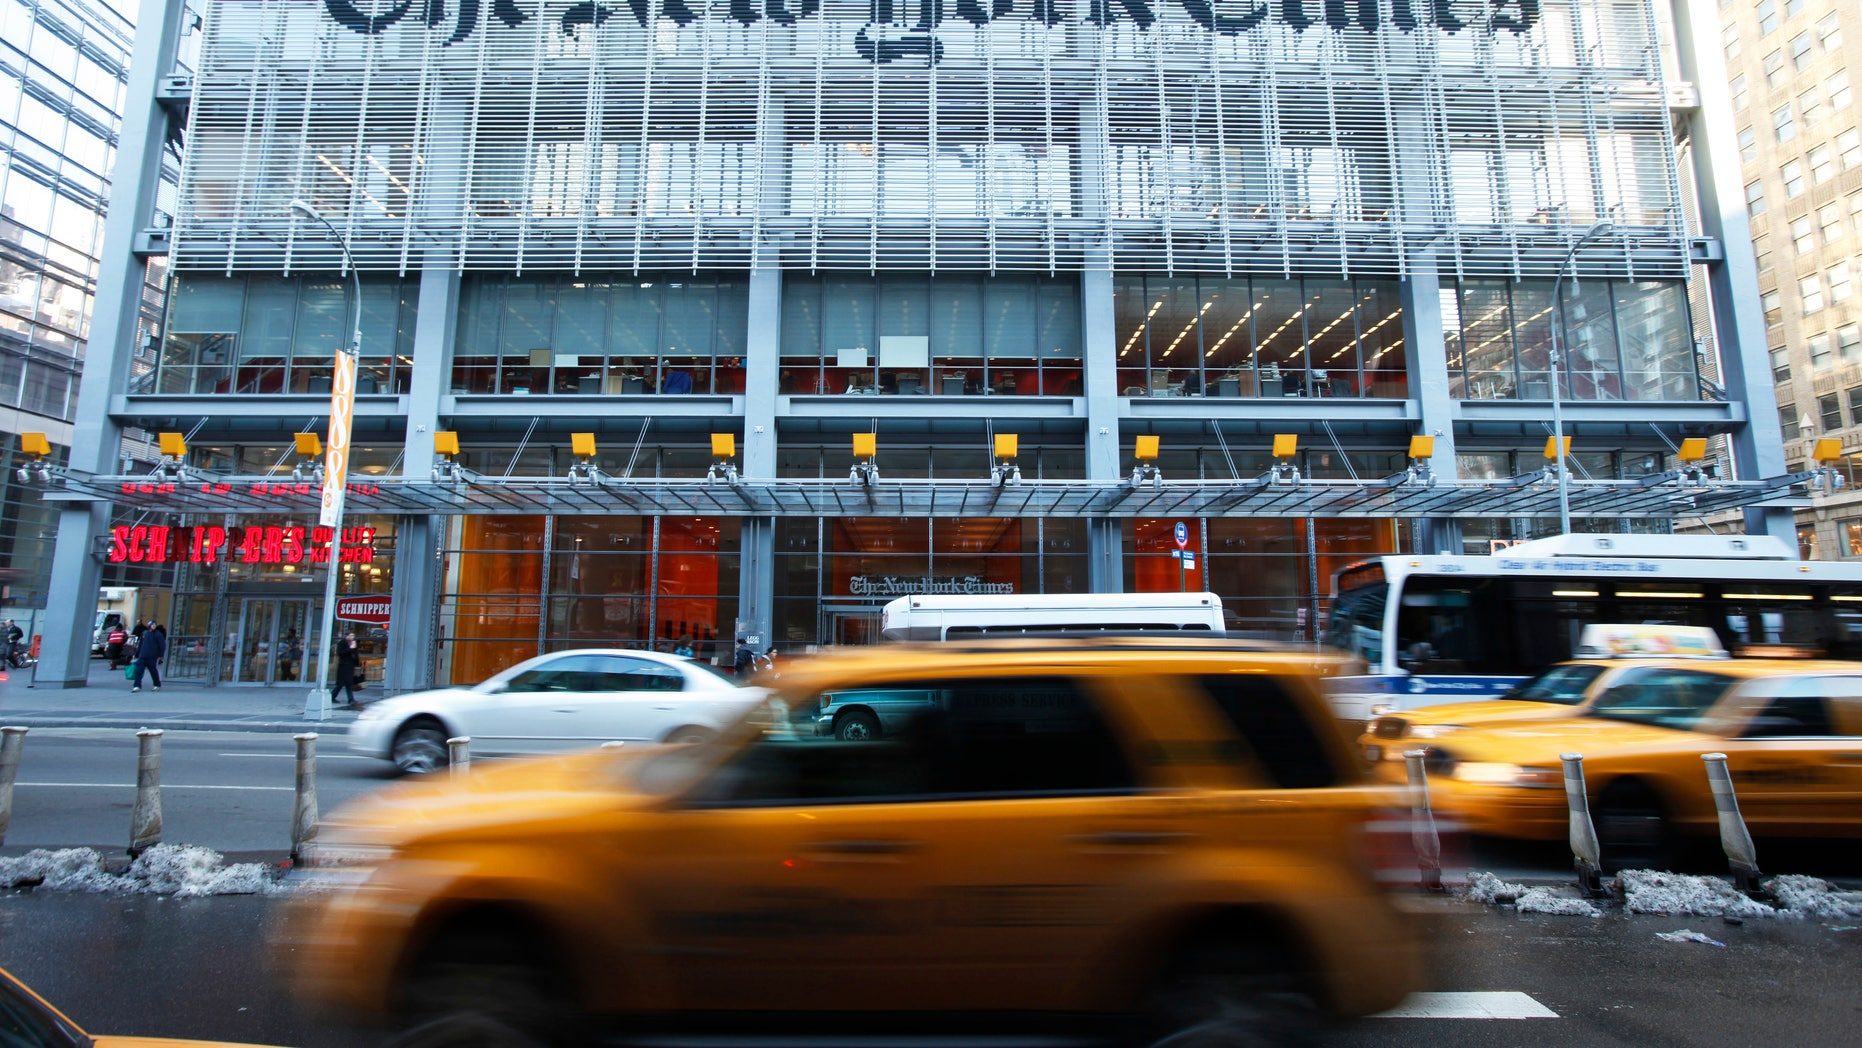 The headquarters of The New York Times.